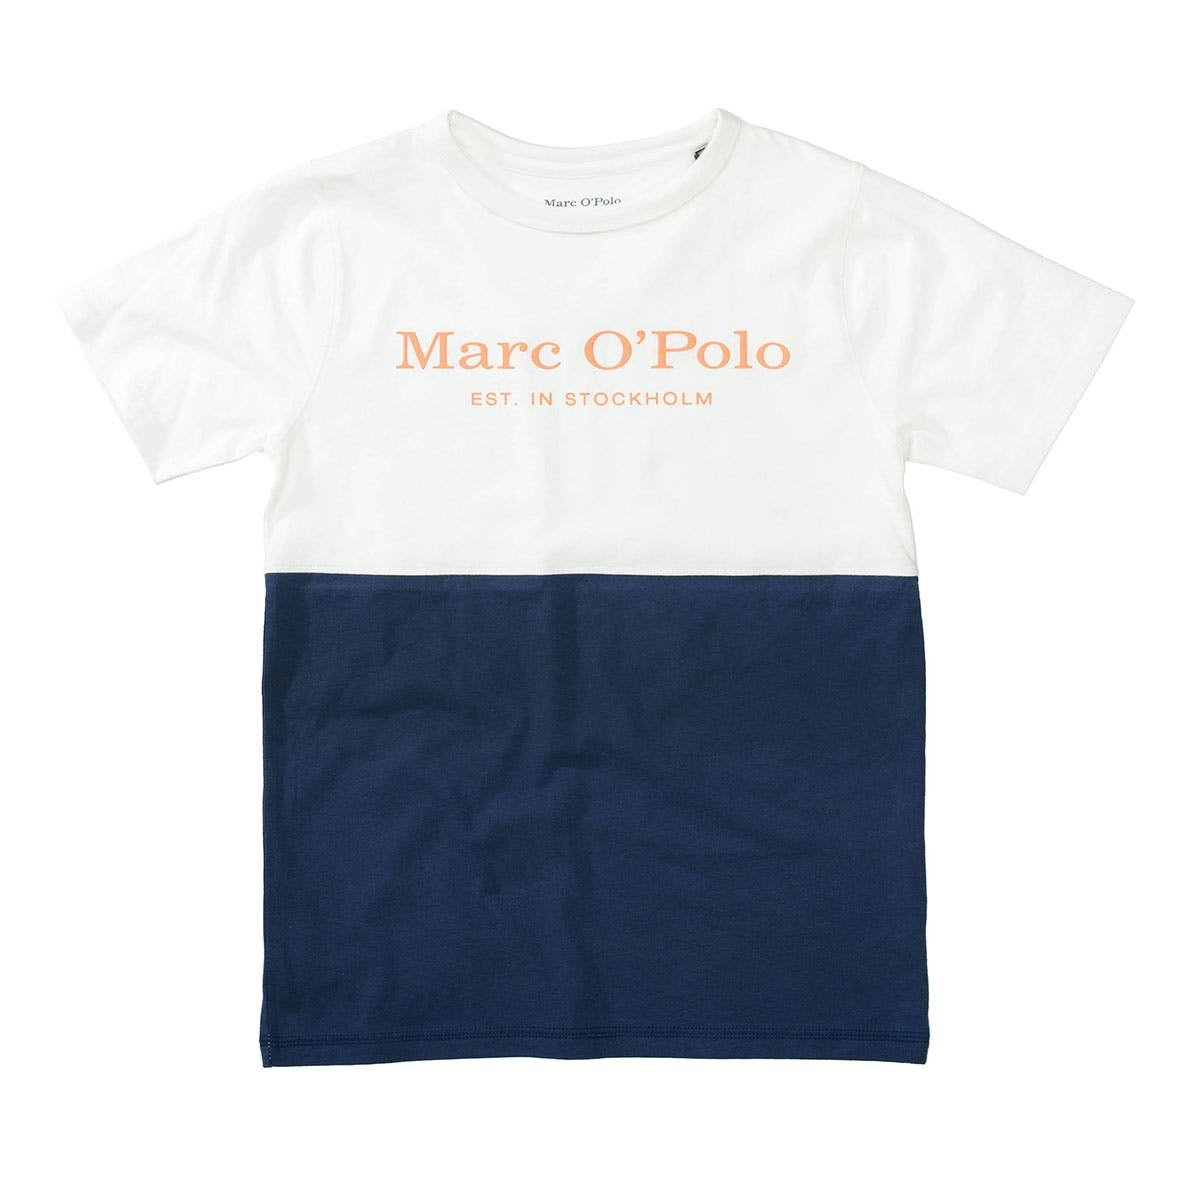 MARC O'POLO T-Shirt aus Bio-Baumwolle - Offwhite Washed Blue